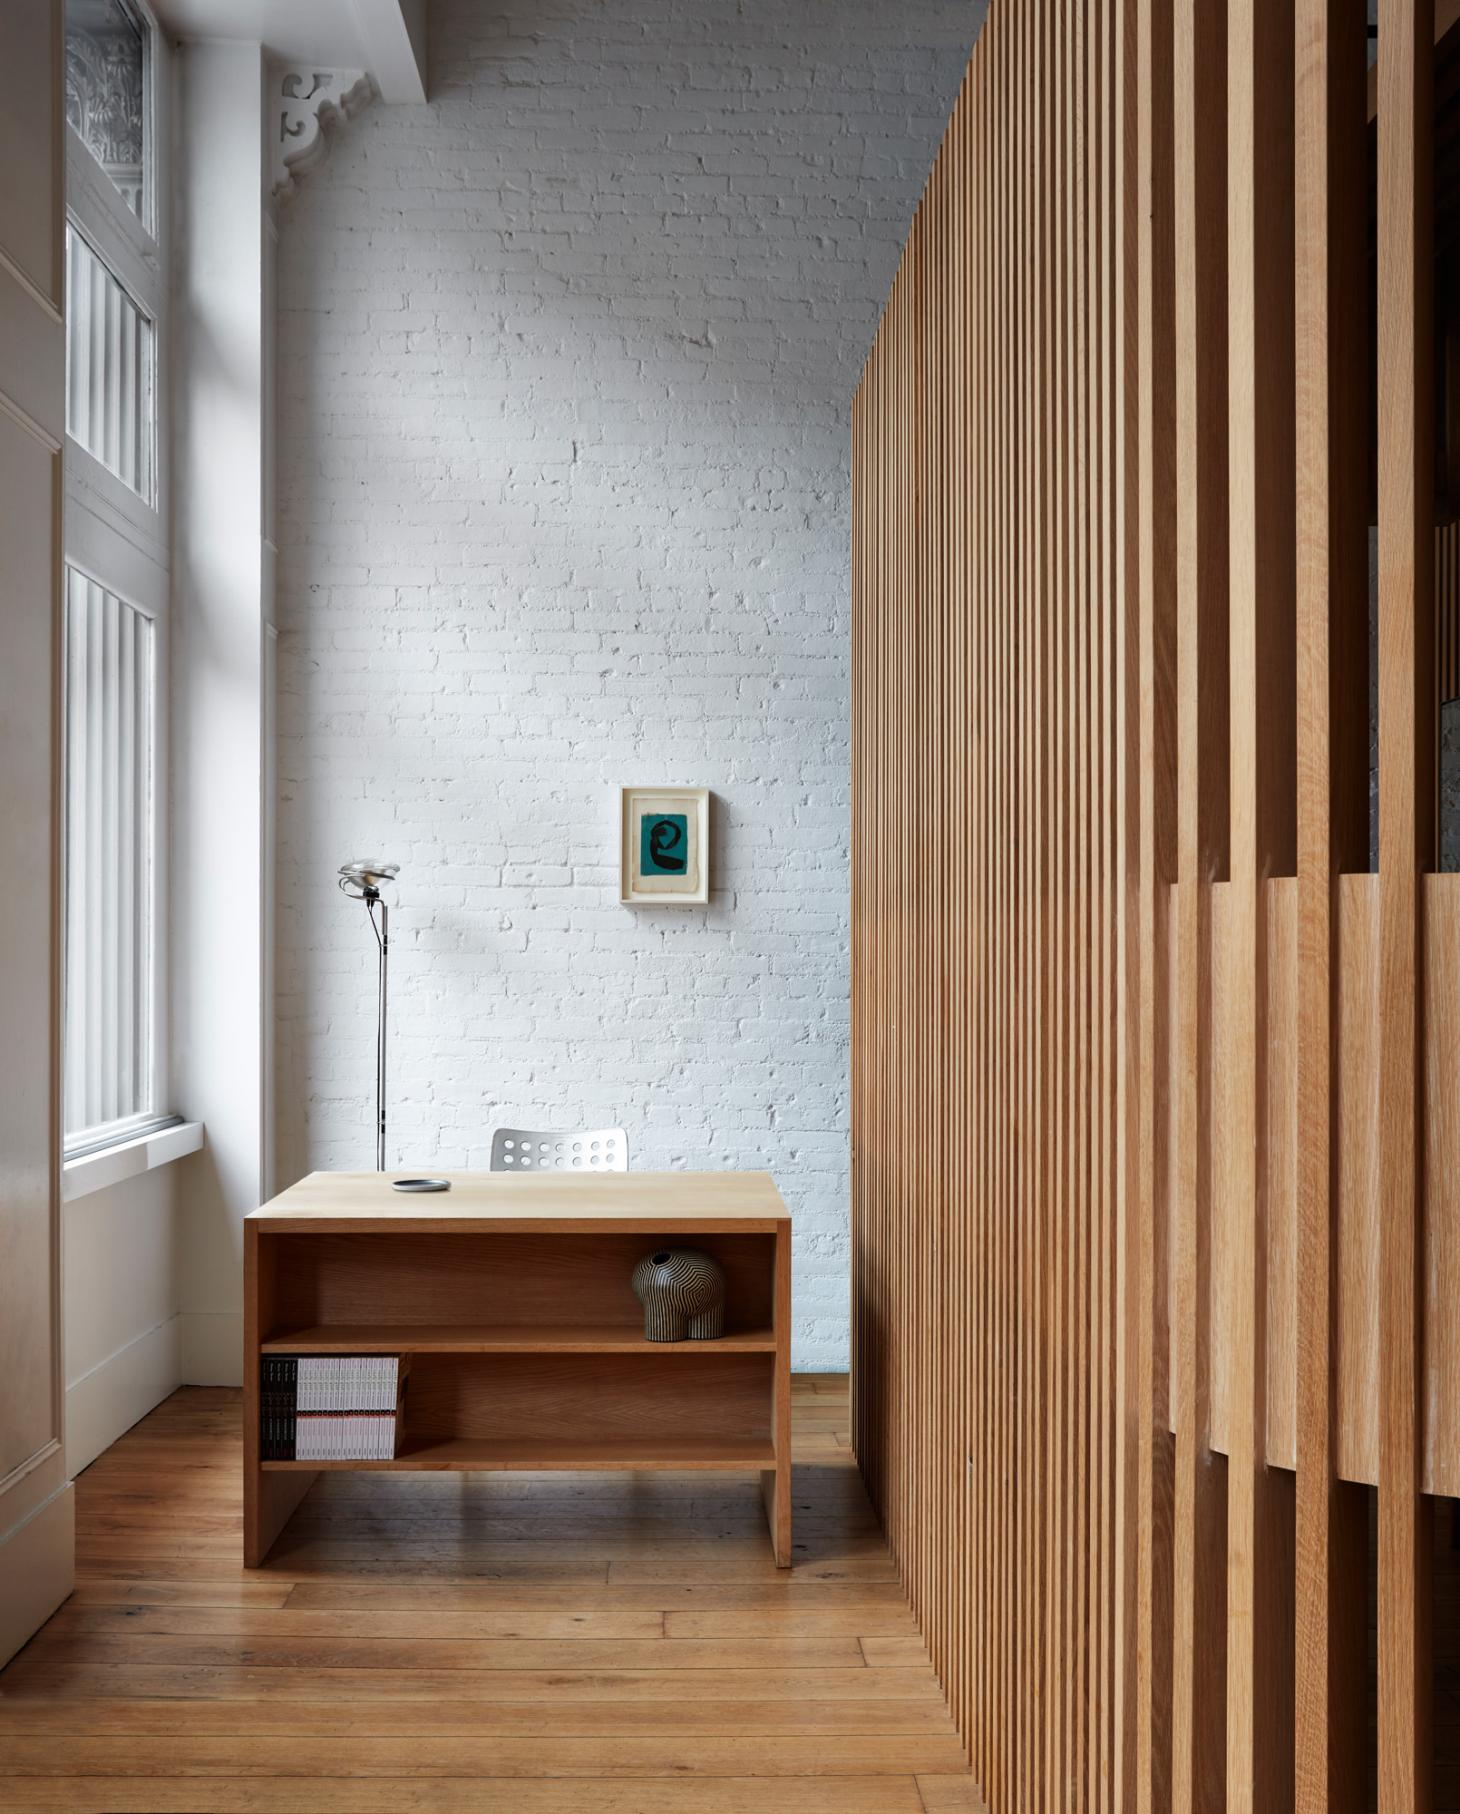 A white painted brick wall, a wooden panelled wall and a large window frame the reception space of this Tribeca hair salon with a modernist oak desk